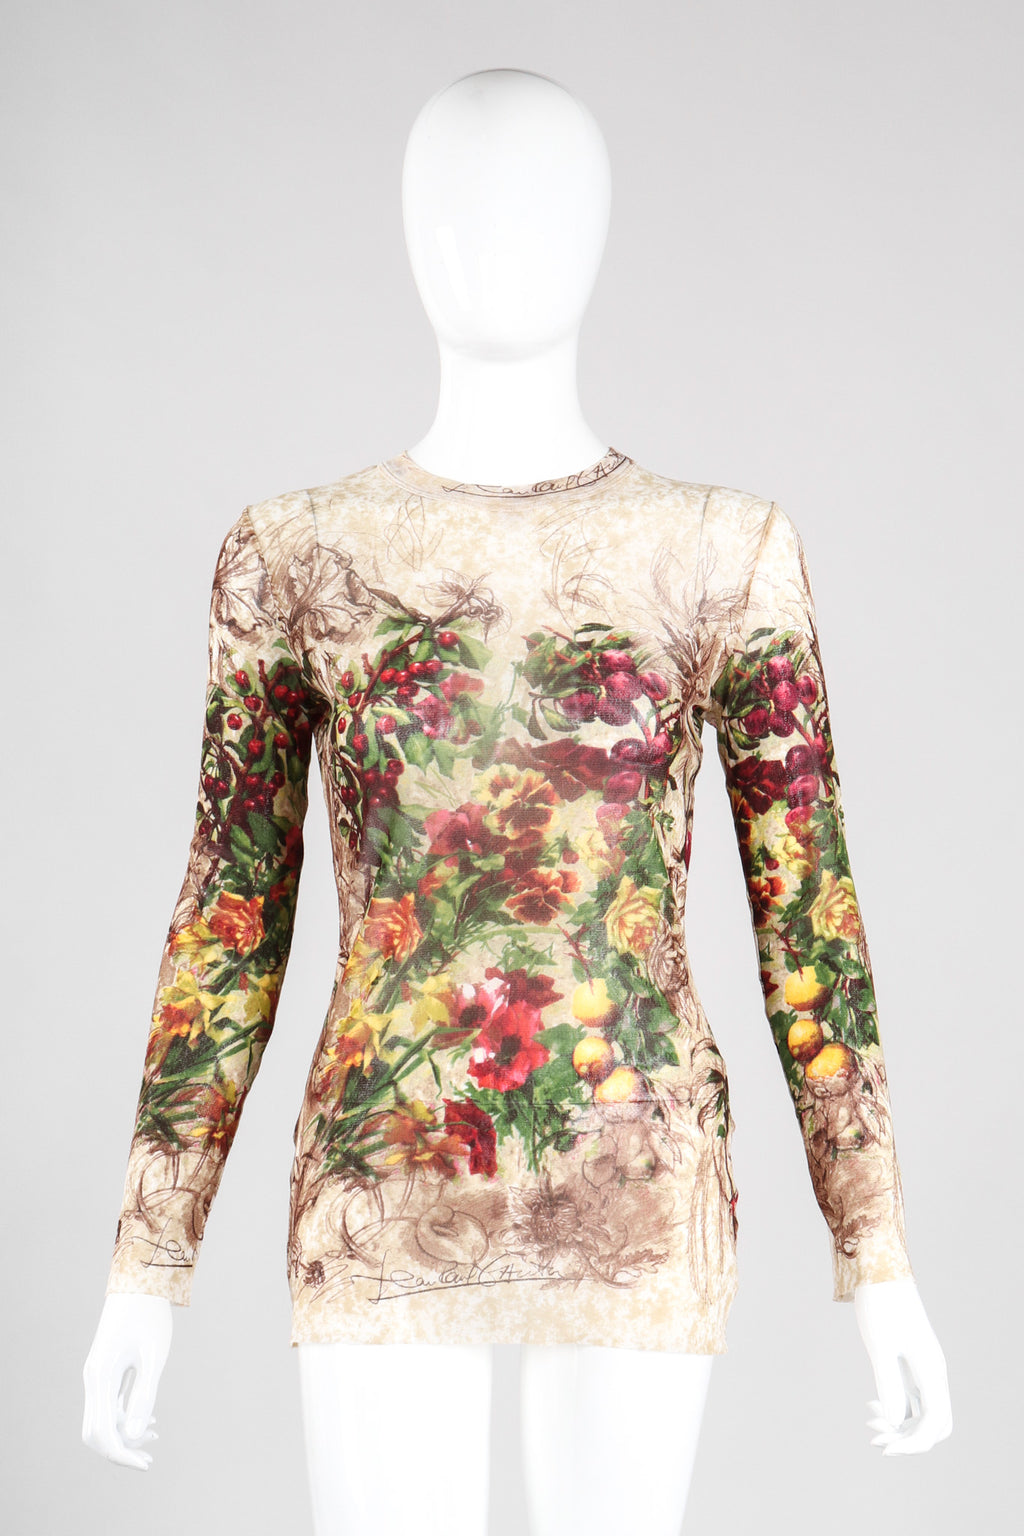 Recess Los Angeles Vintage Jean Paul Gaultier Maille Classique Floral Sketch Art Mesh T-Shirt